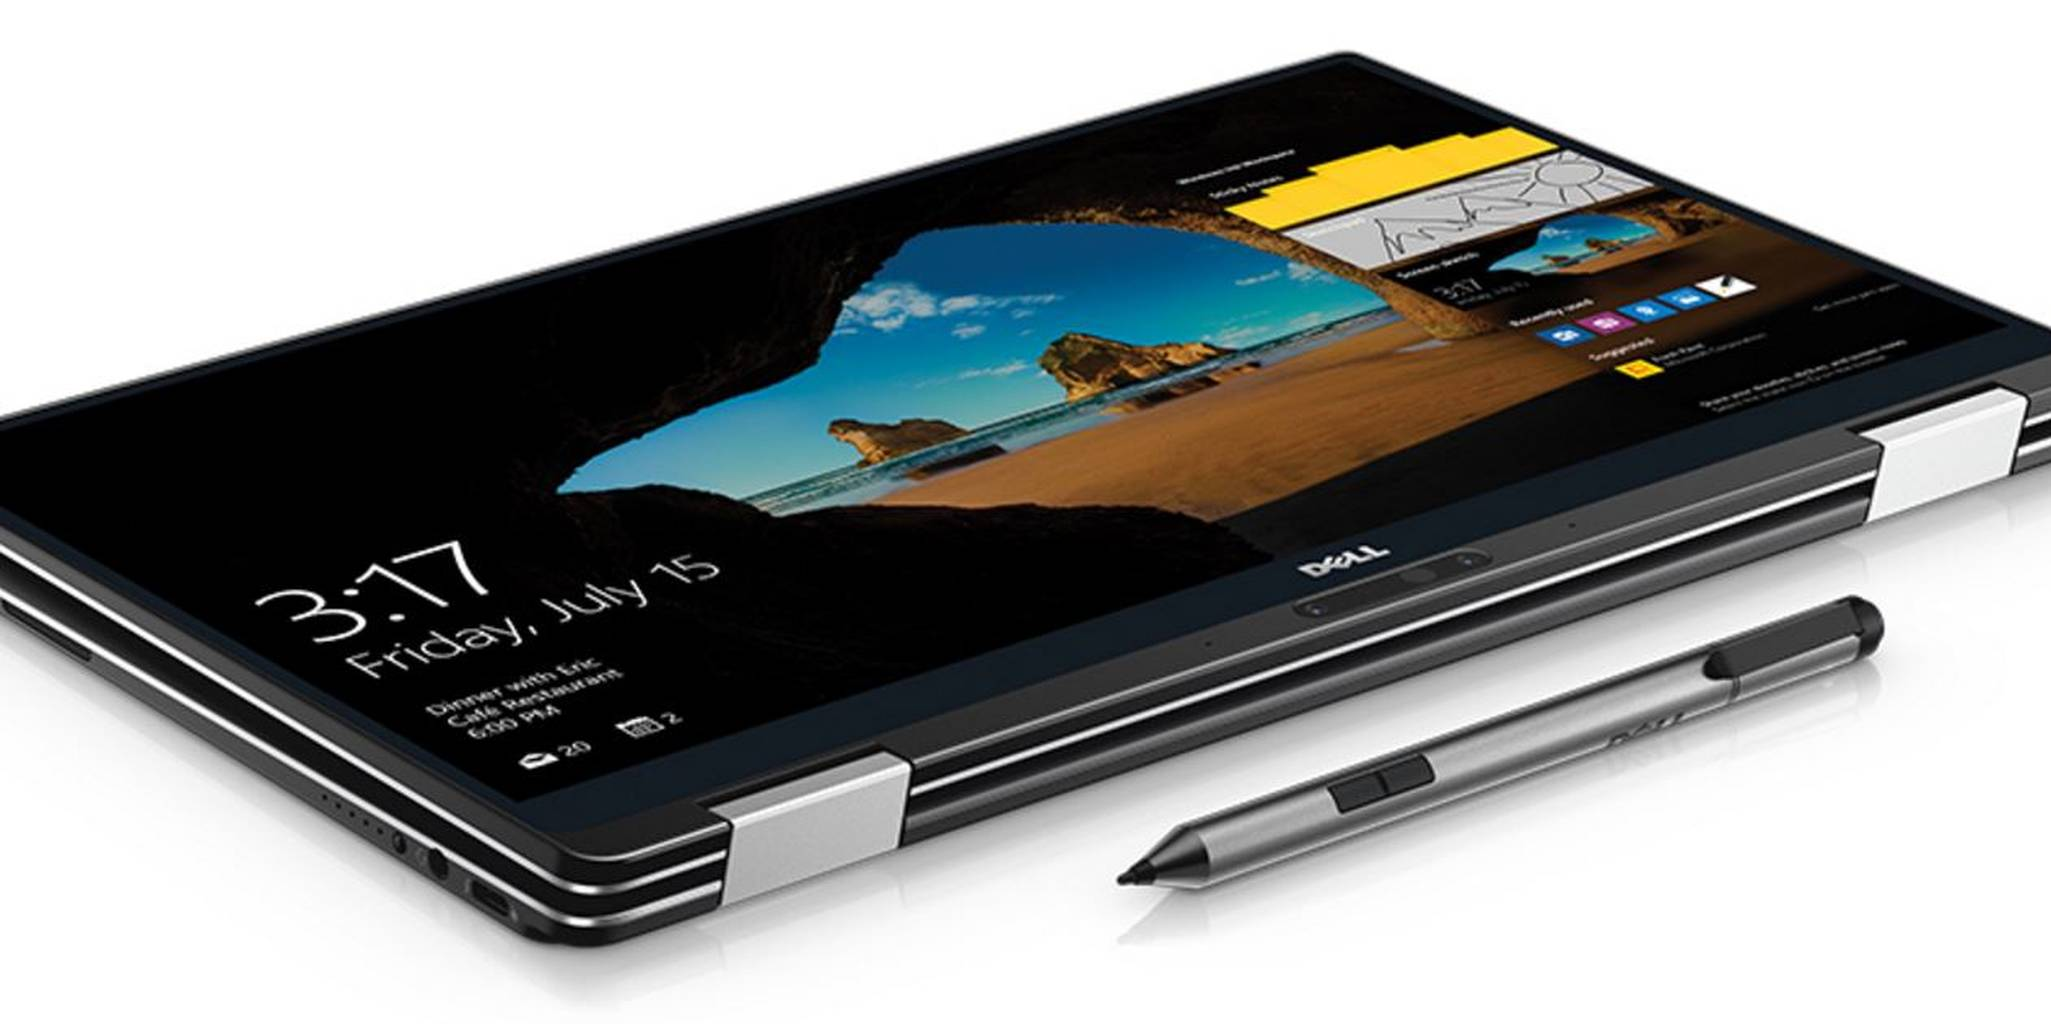 Dell XPS 13 2-in 1 laptop With Stylus Pen Accessory